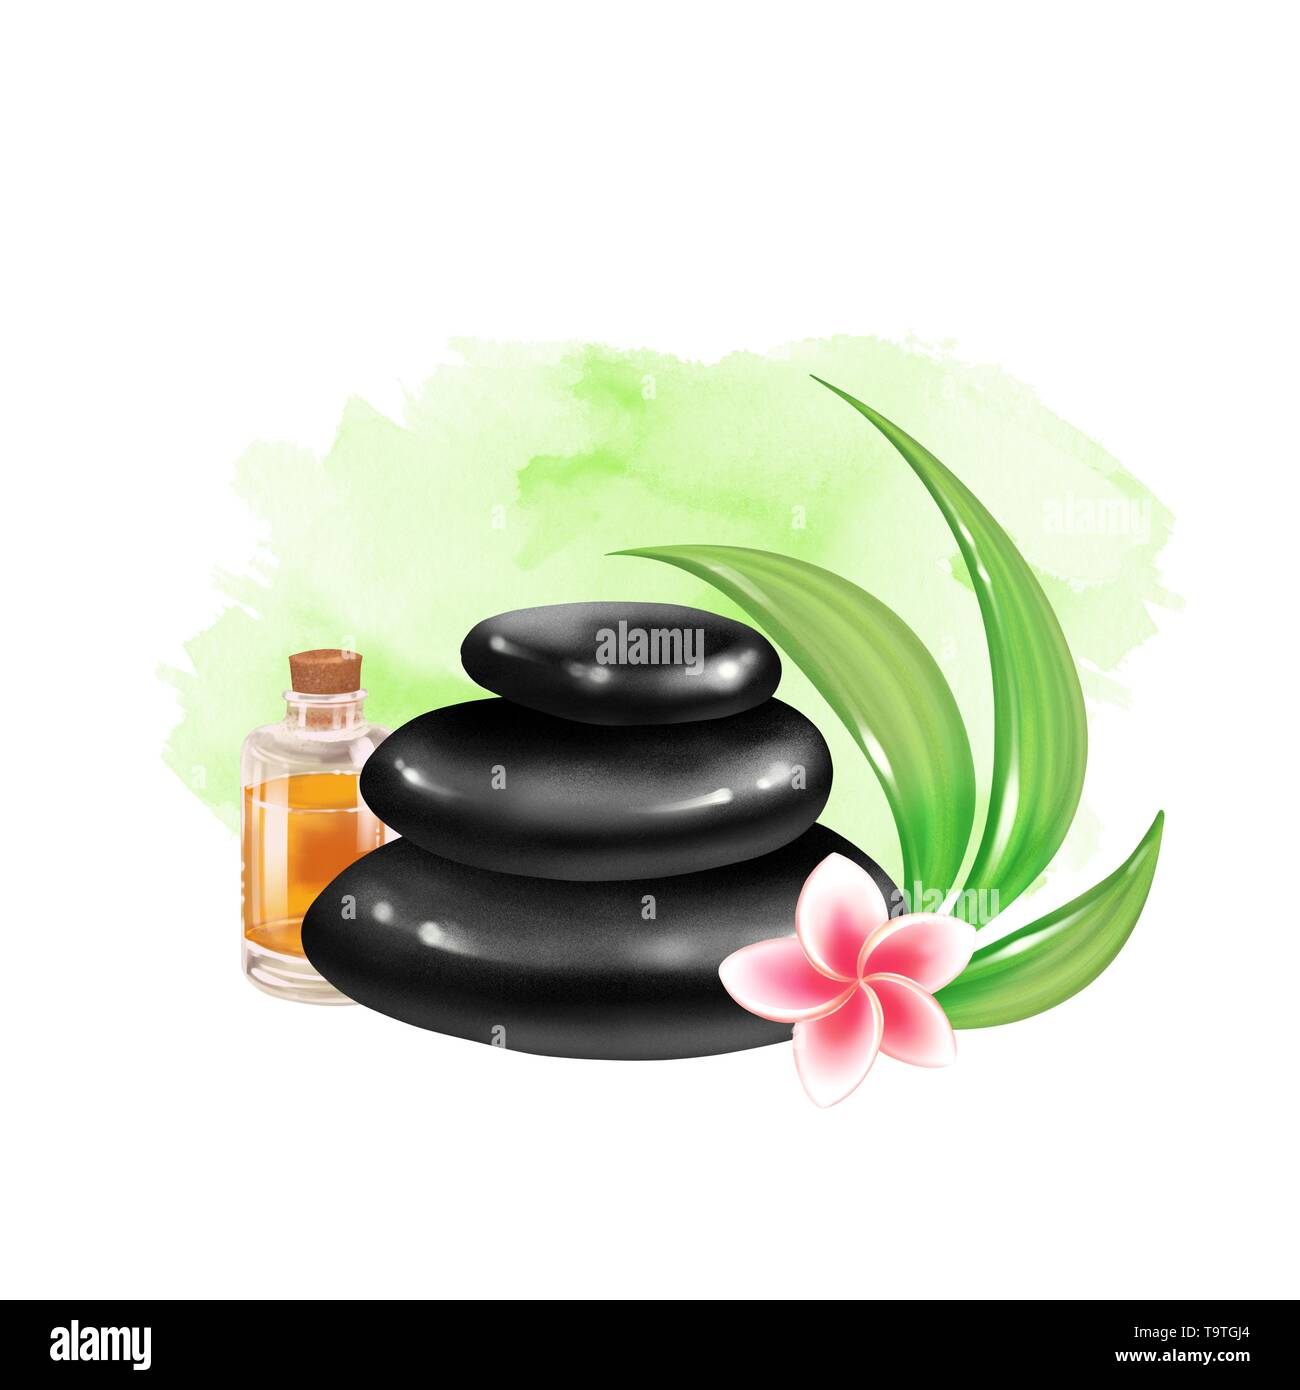 SPA composition on watercolor background - Stock Image